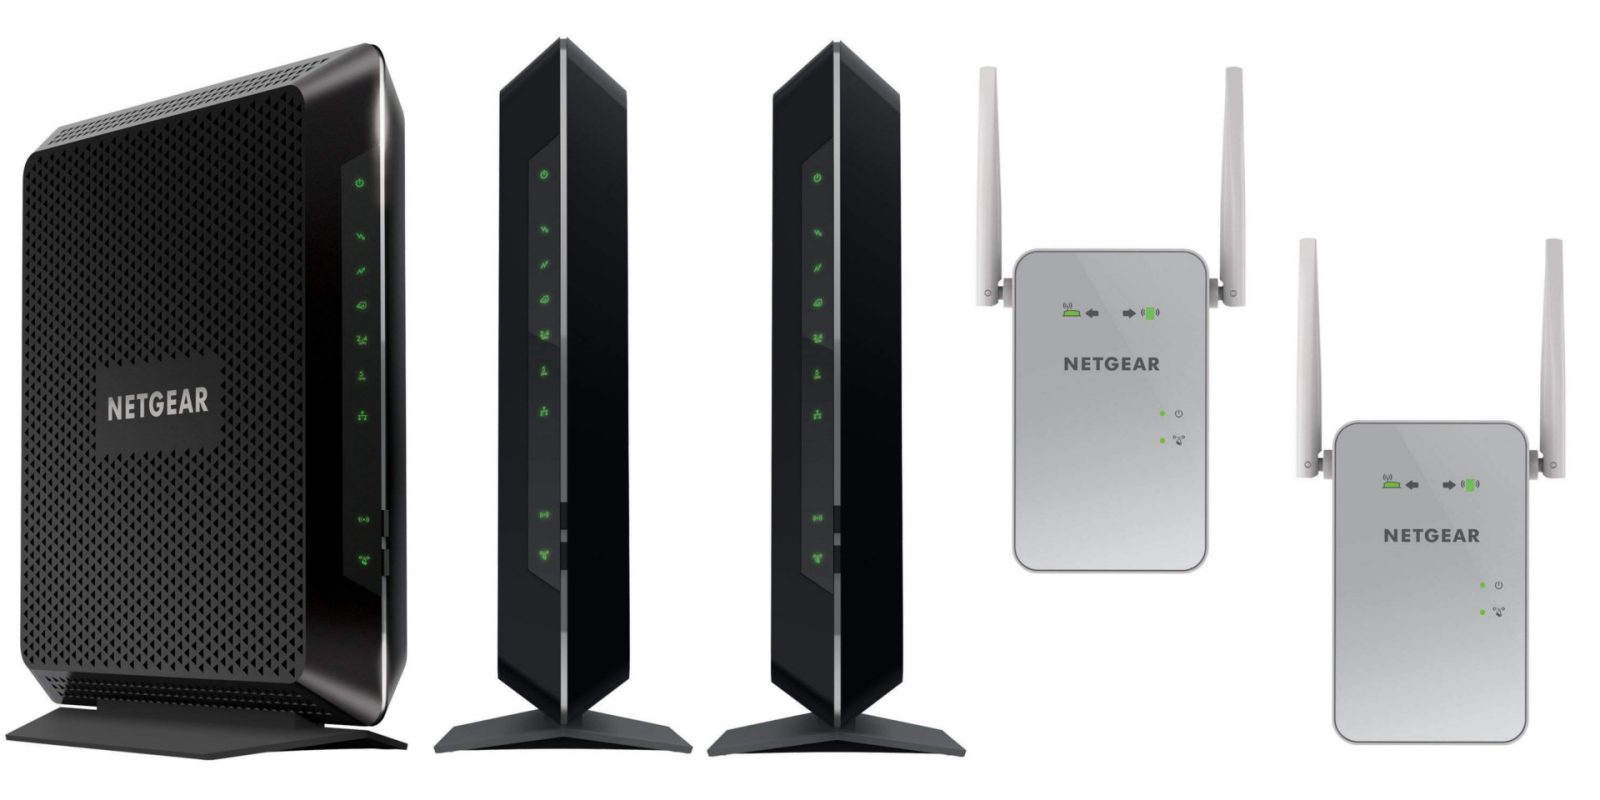 Amazon refurb NETGEAR modem router & extender sale from $40 (Up to $110 off)